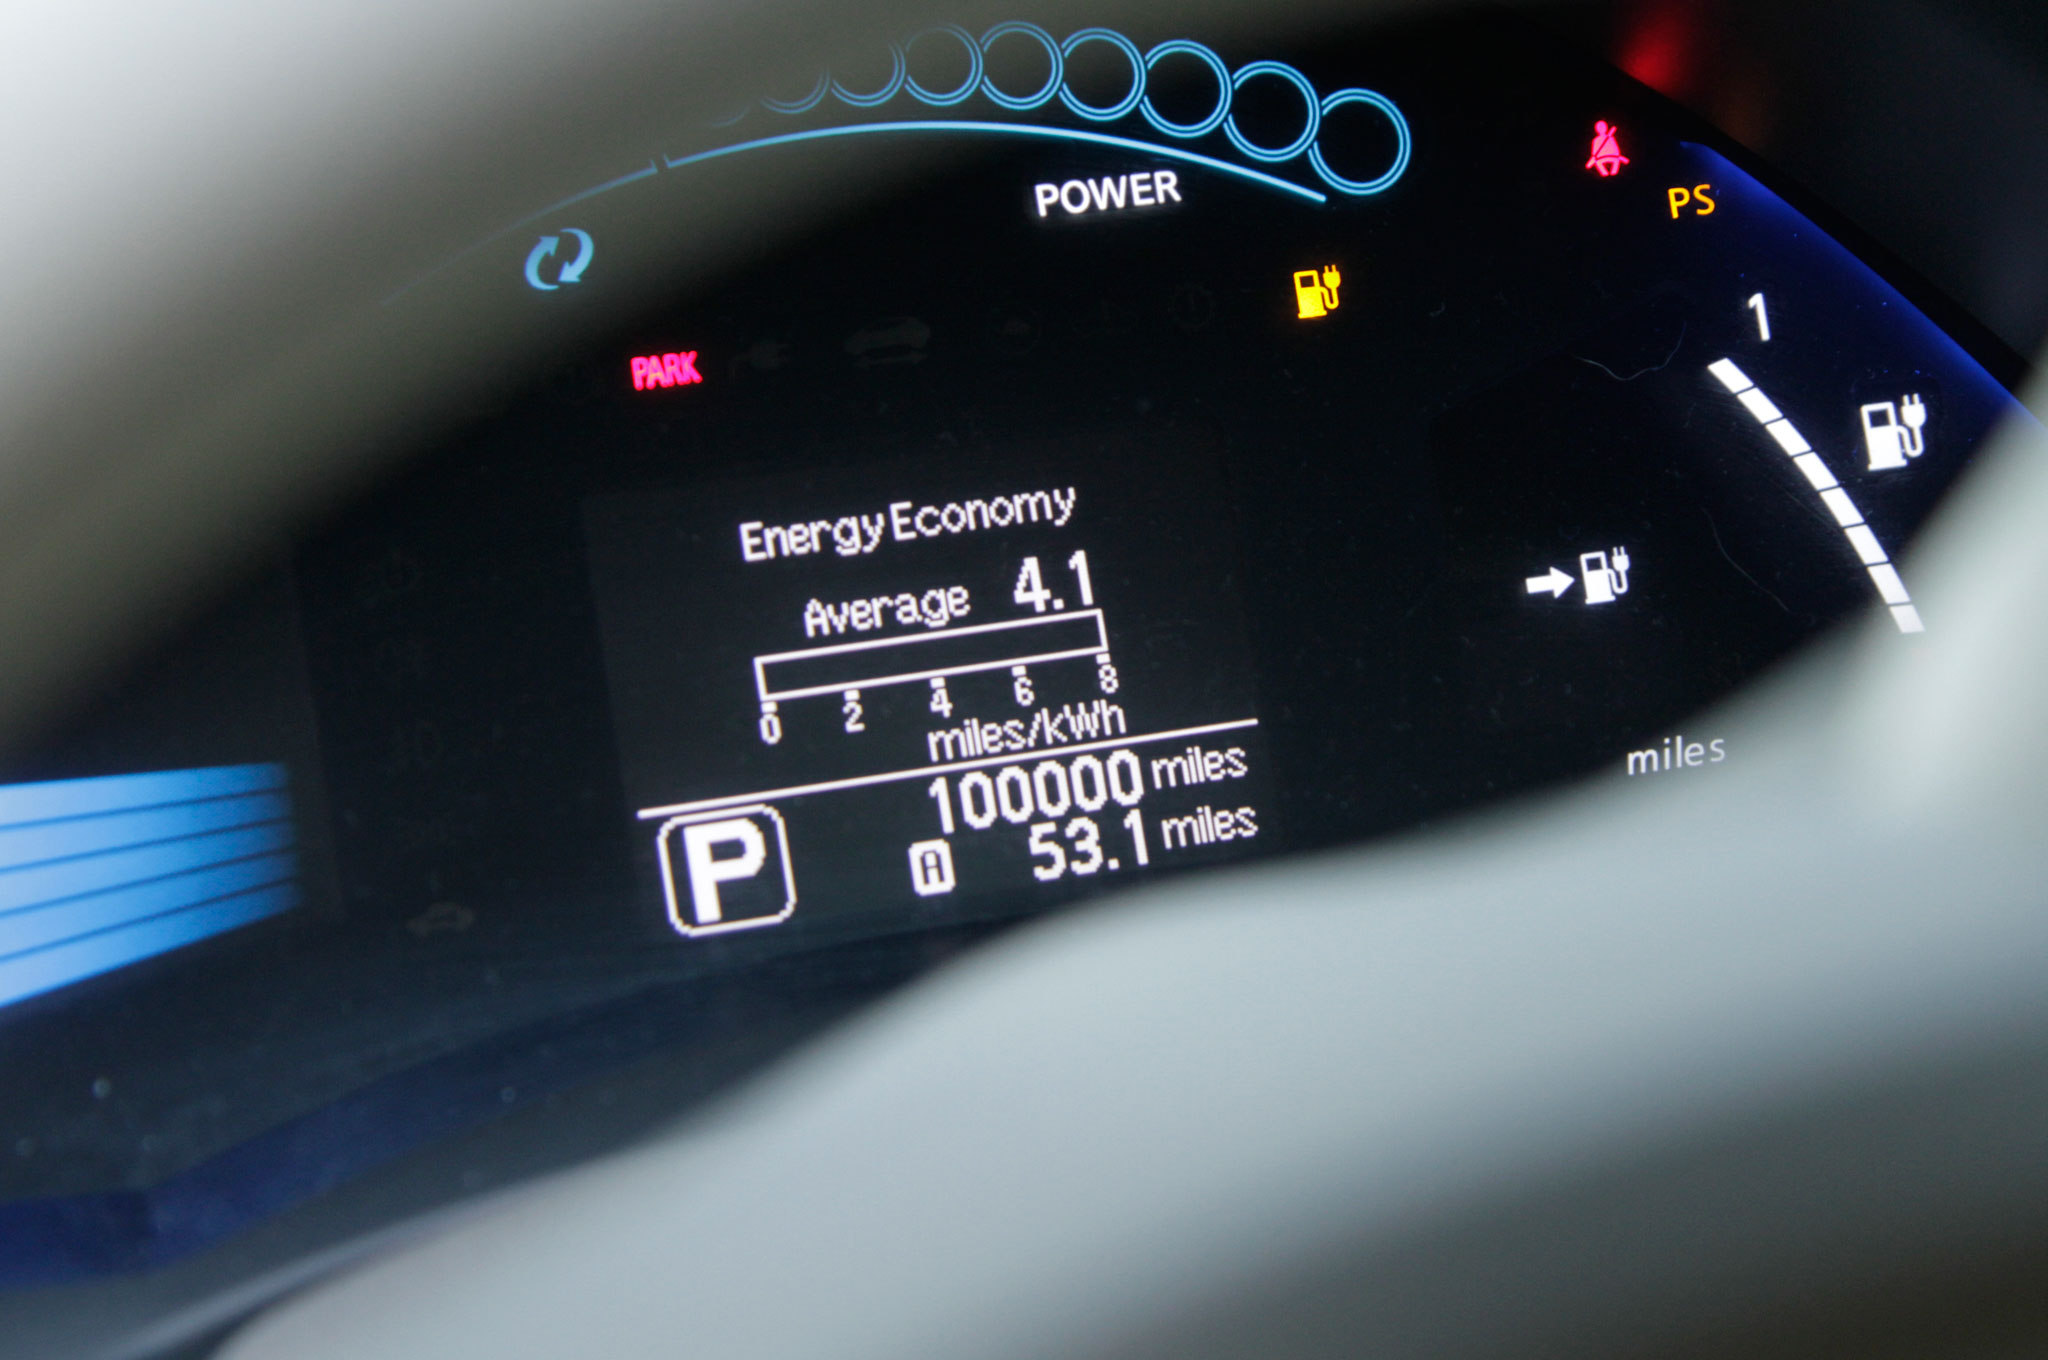 Nissan Leaf Owner Hits 100,000 Miles in Less than Three Years